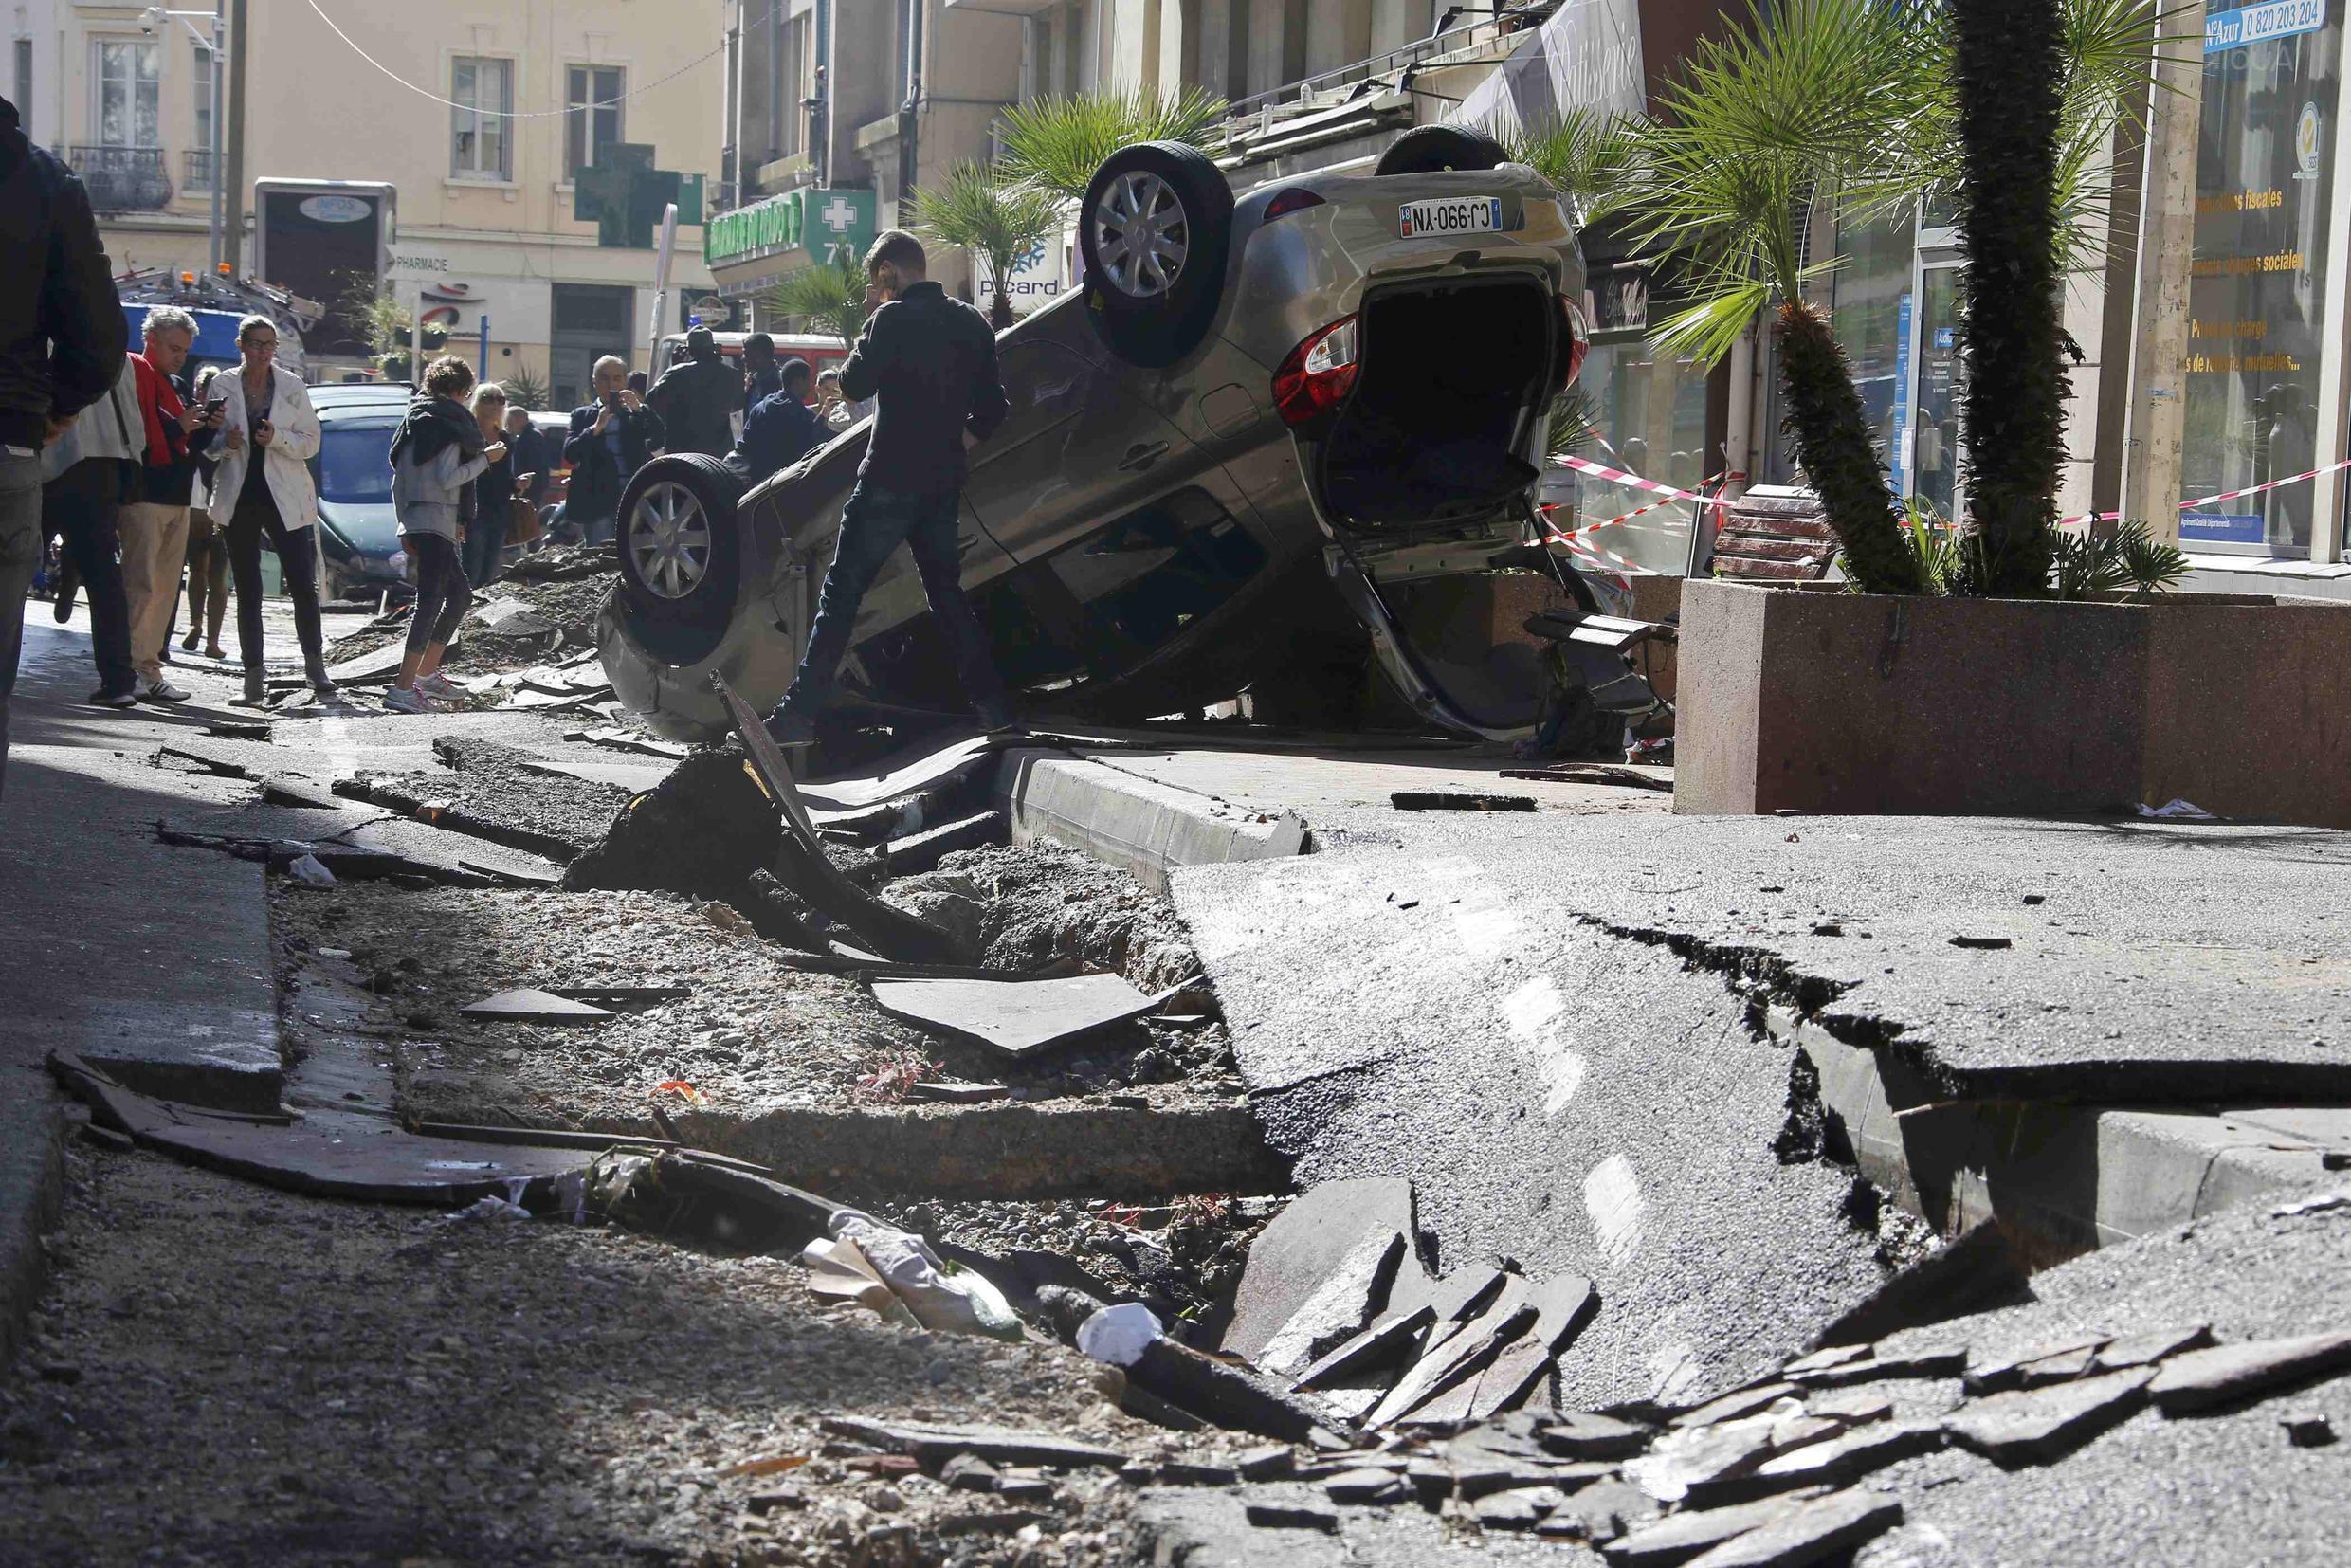 A street in Cannes destroyed by flooding